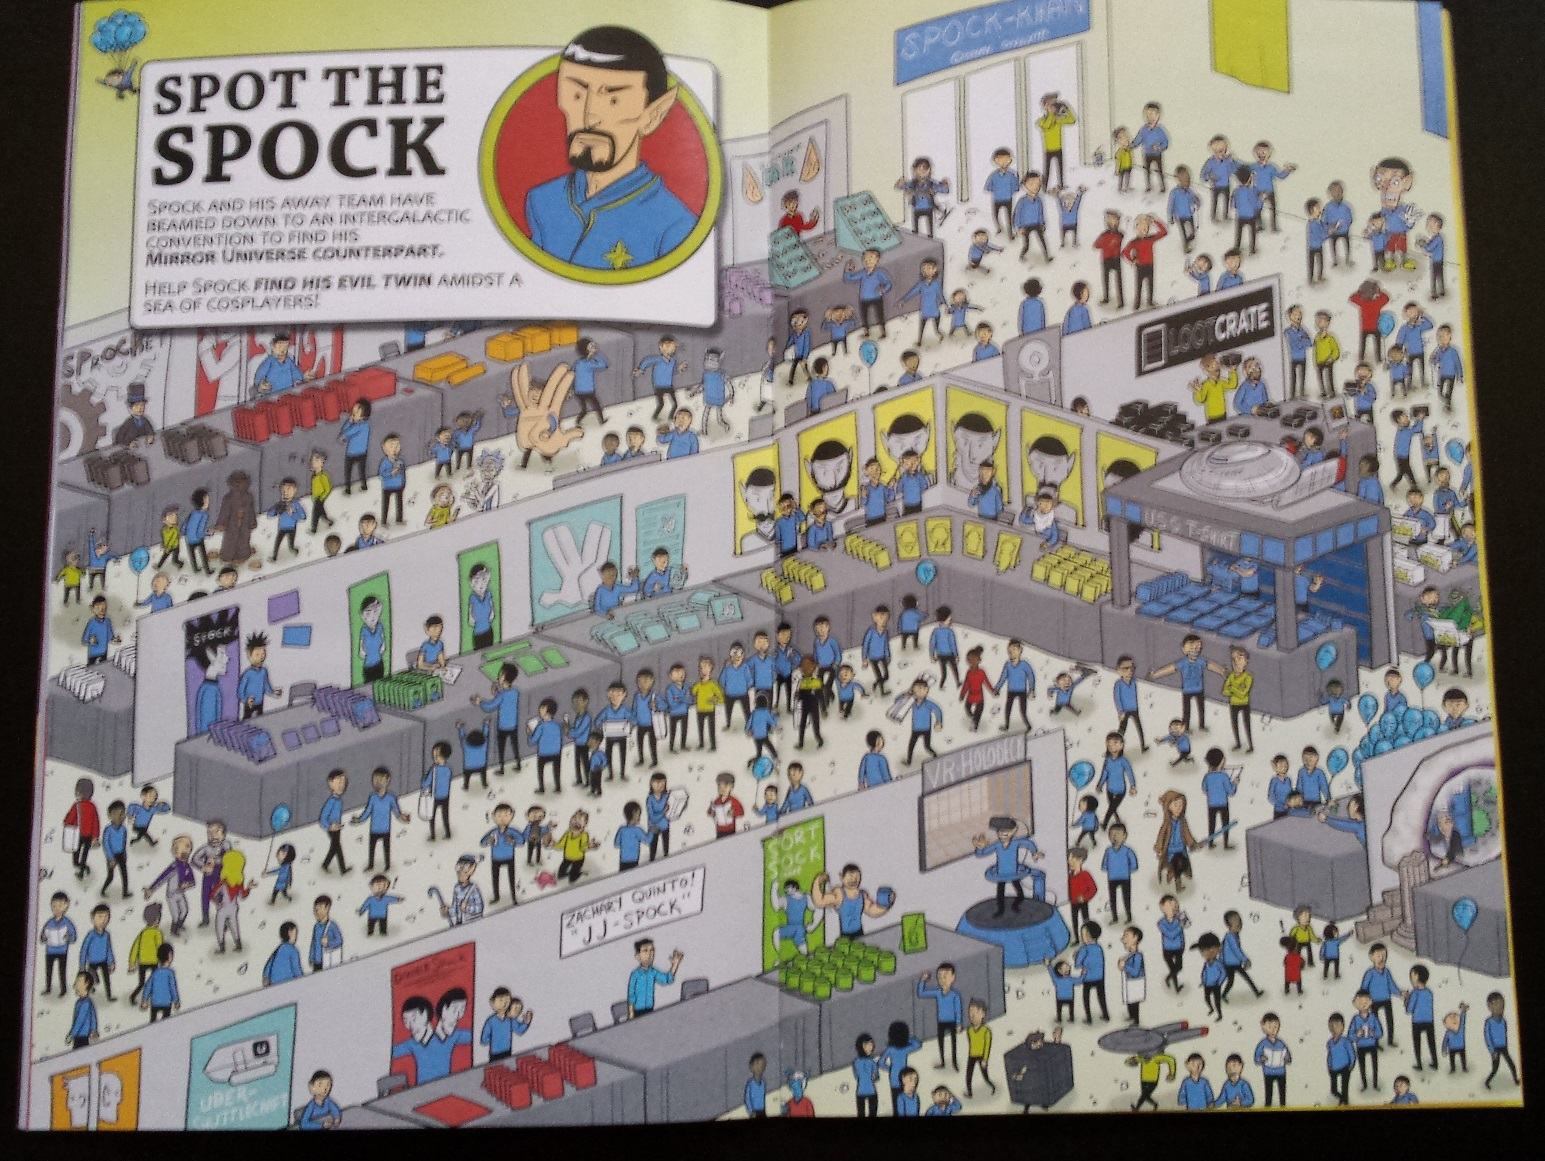 Loot crate magazine, loot crate versus, spot the spock